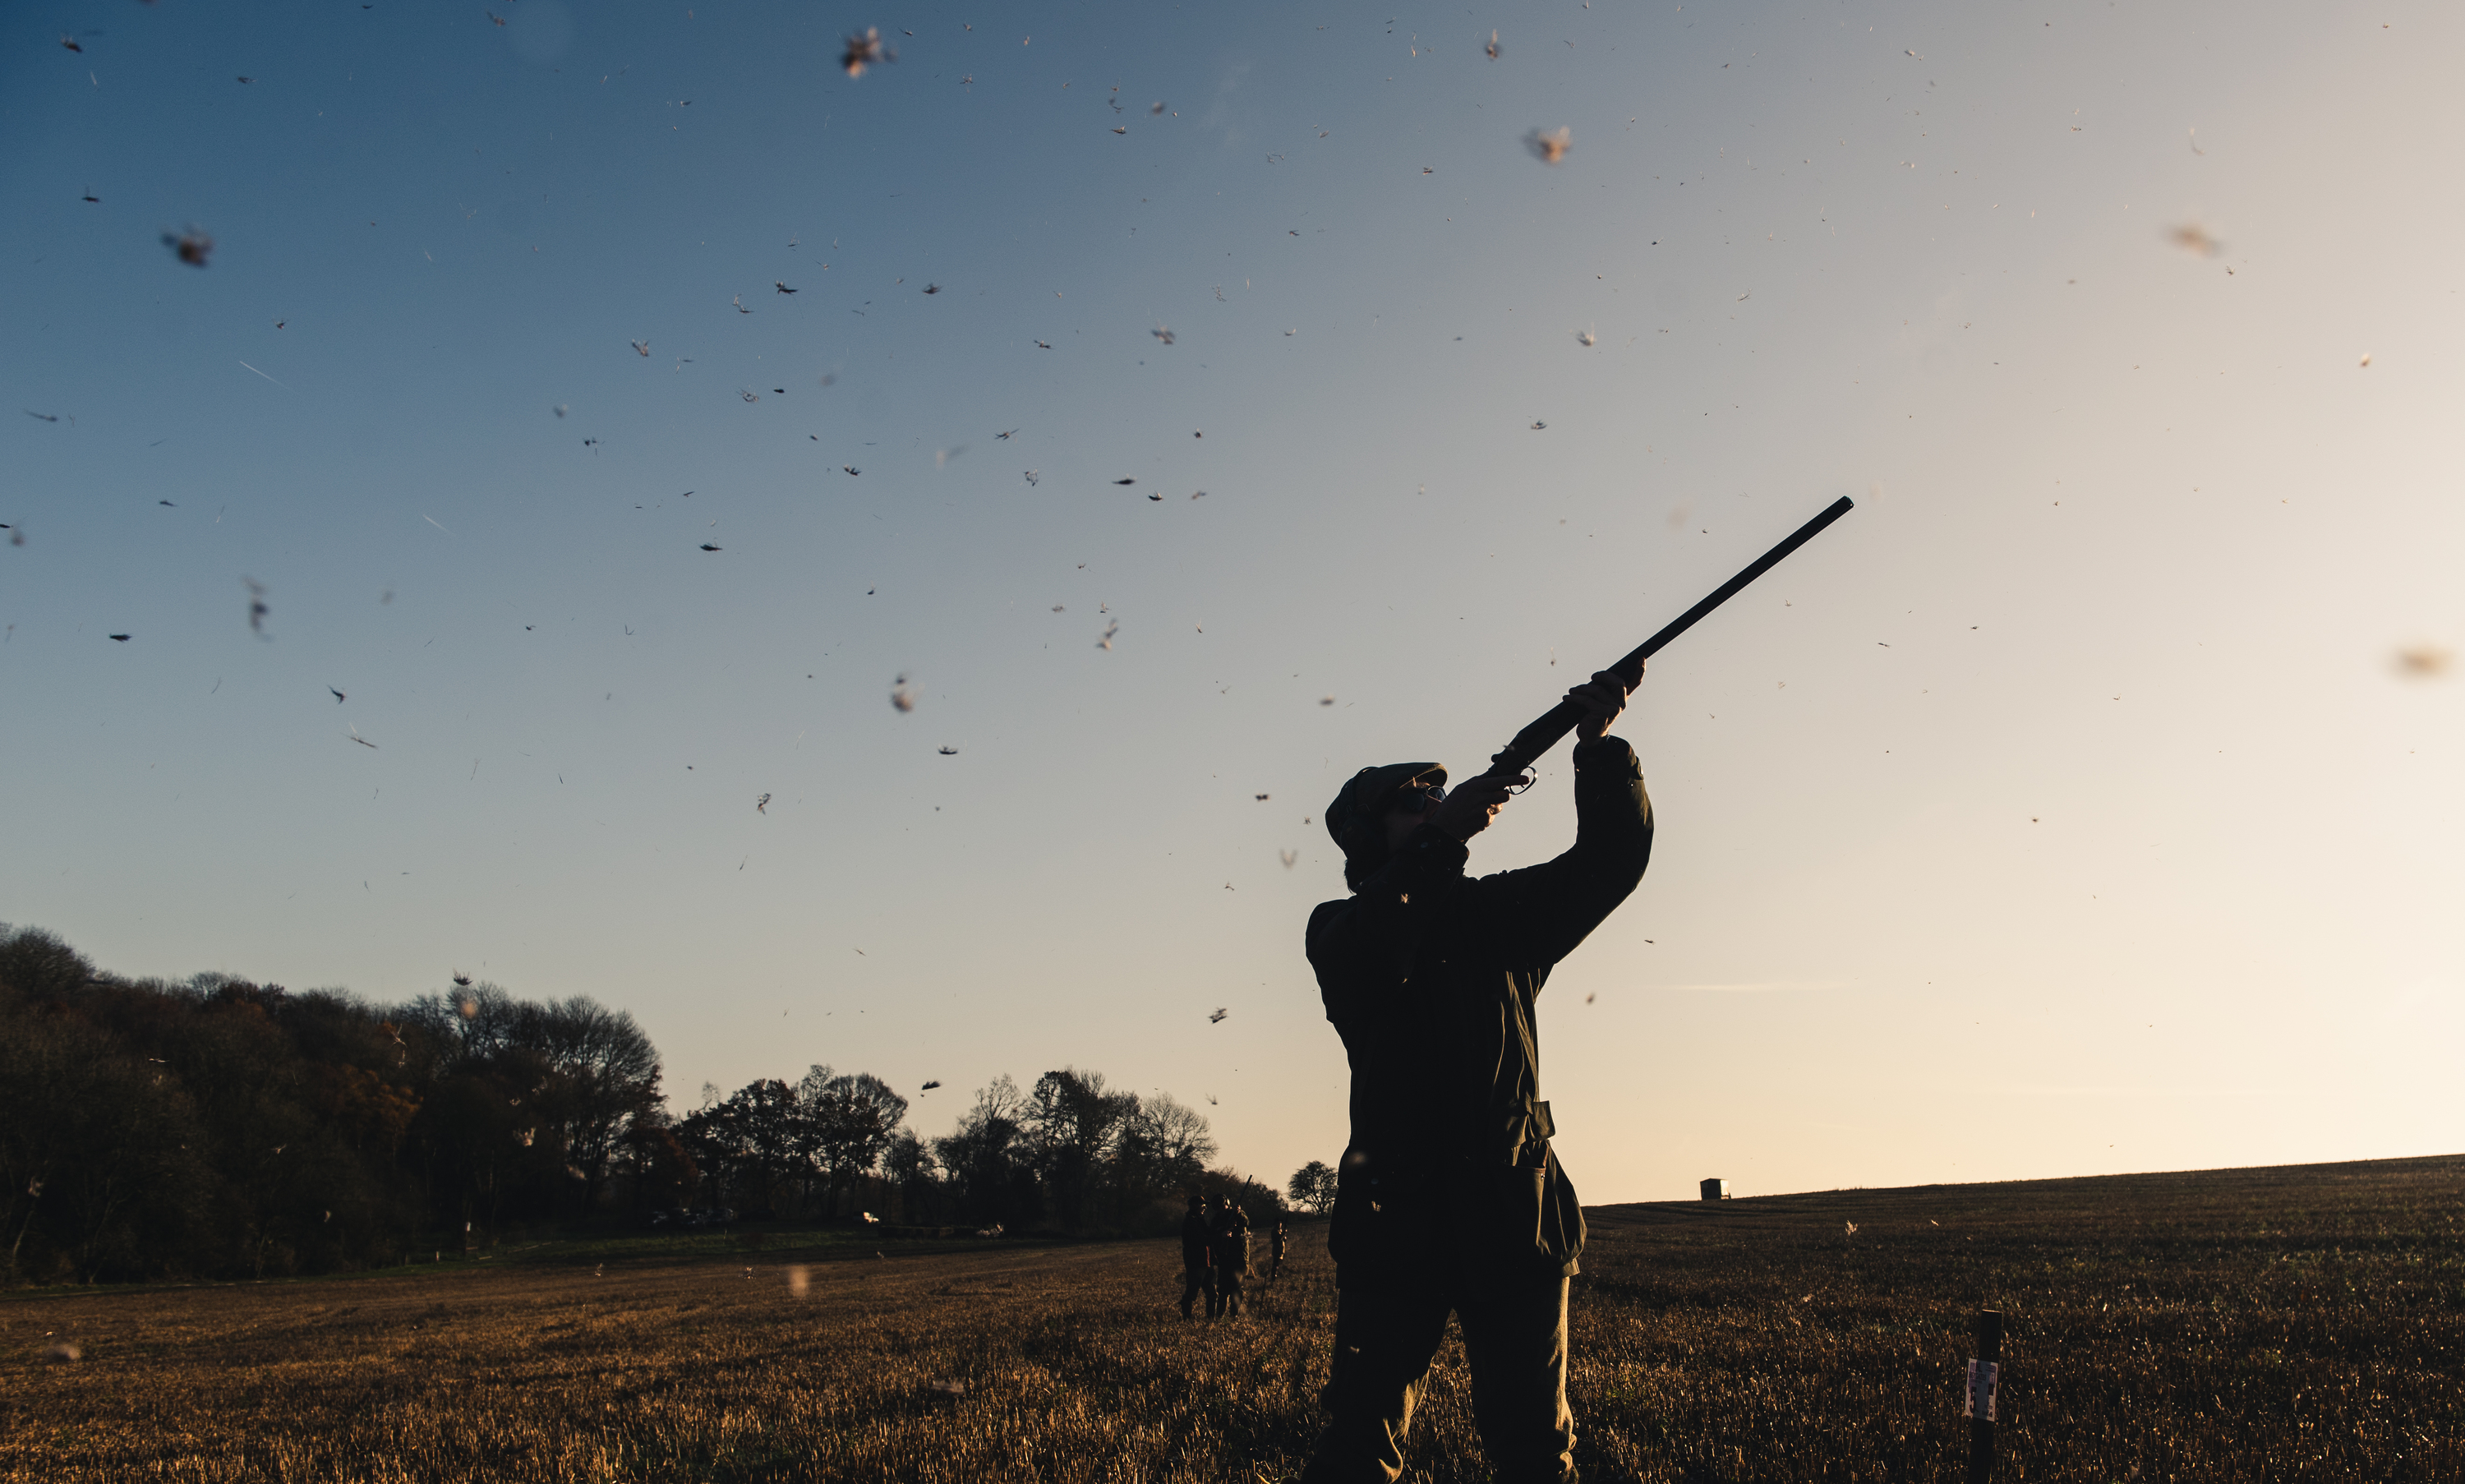 game-shooting photographer based in the Cotswolds specialising in atmospheric images of countryside images